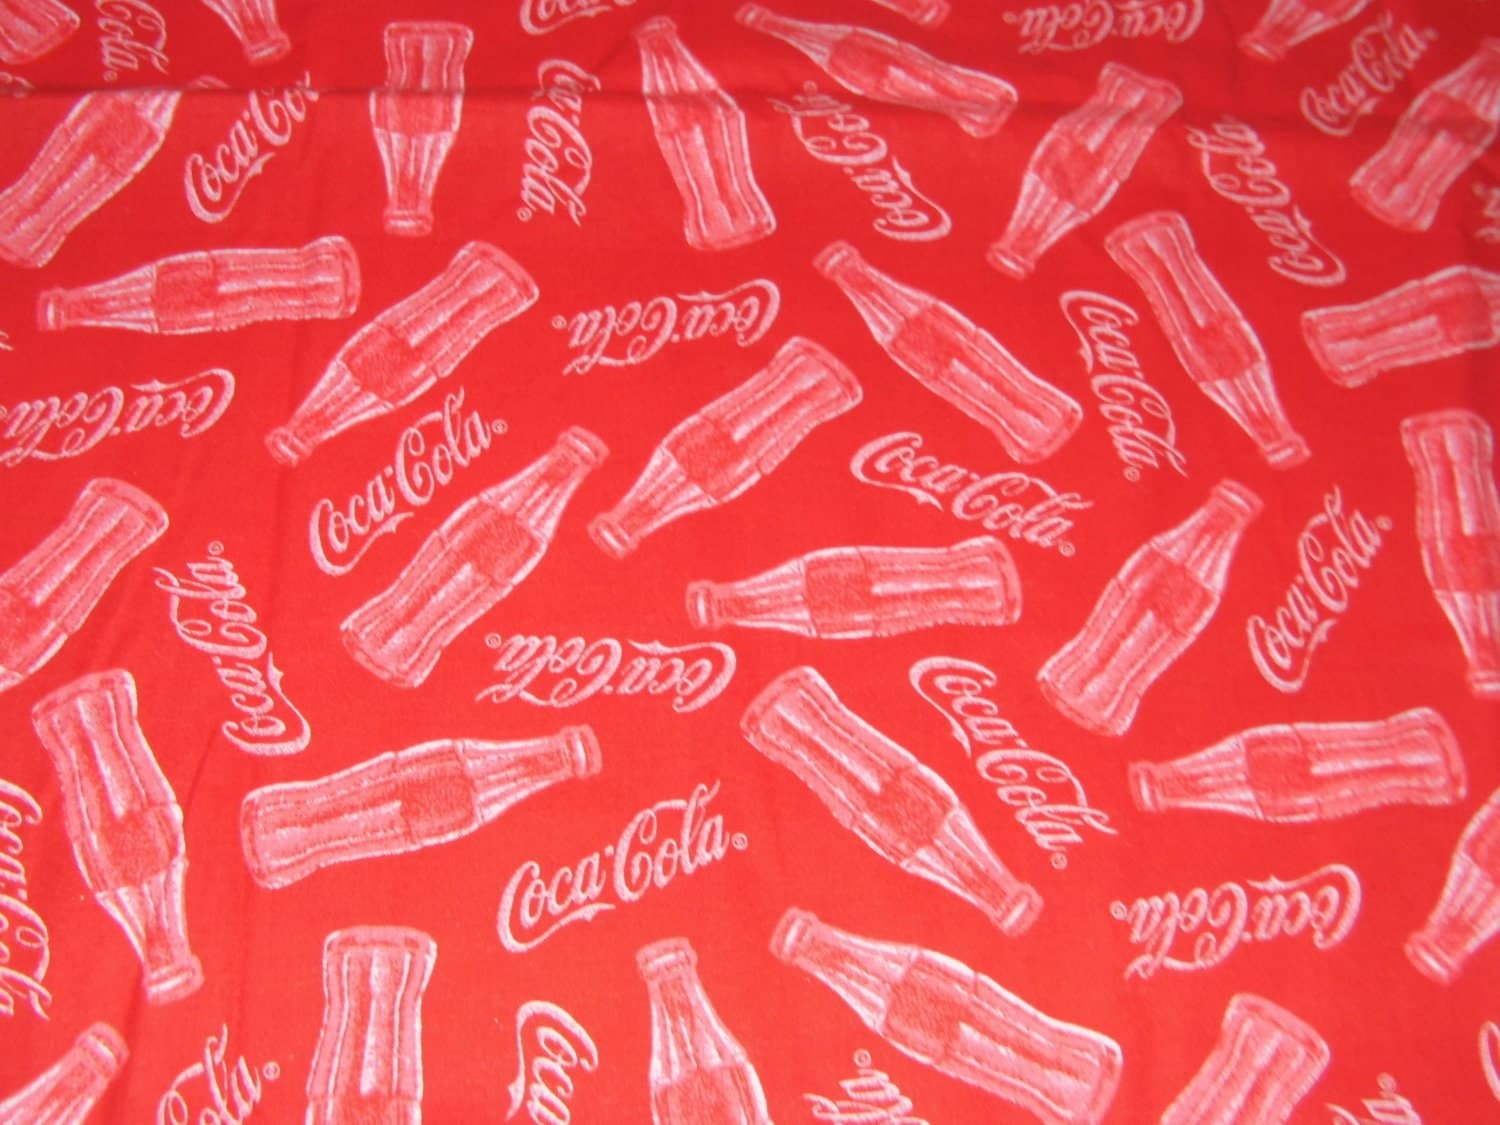 Jo Ann Fabrics Coca Cola Fabric Pictures To Pin On